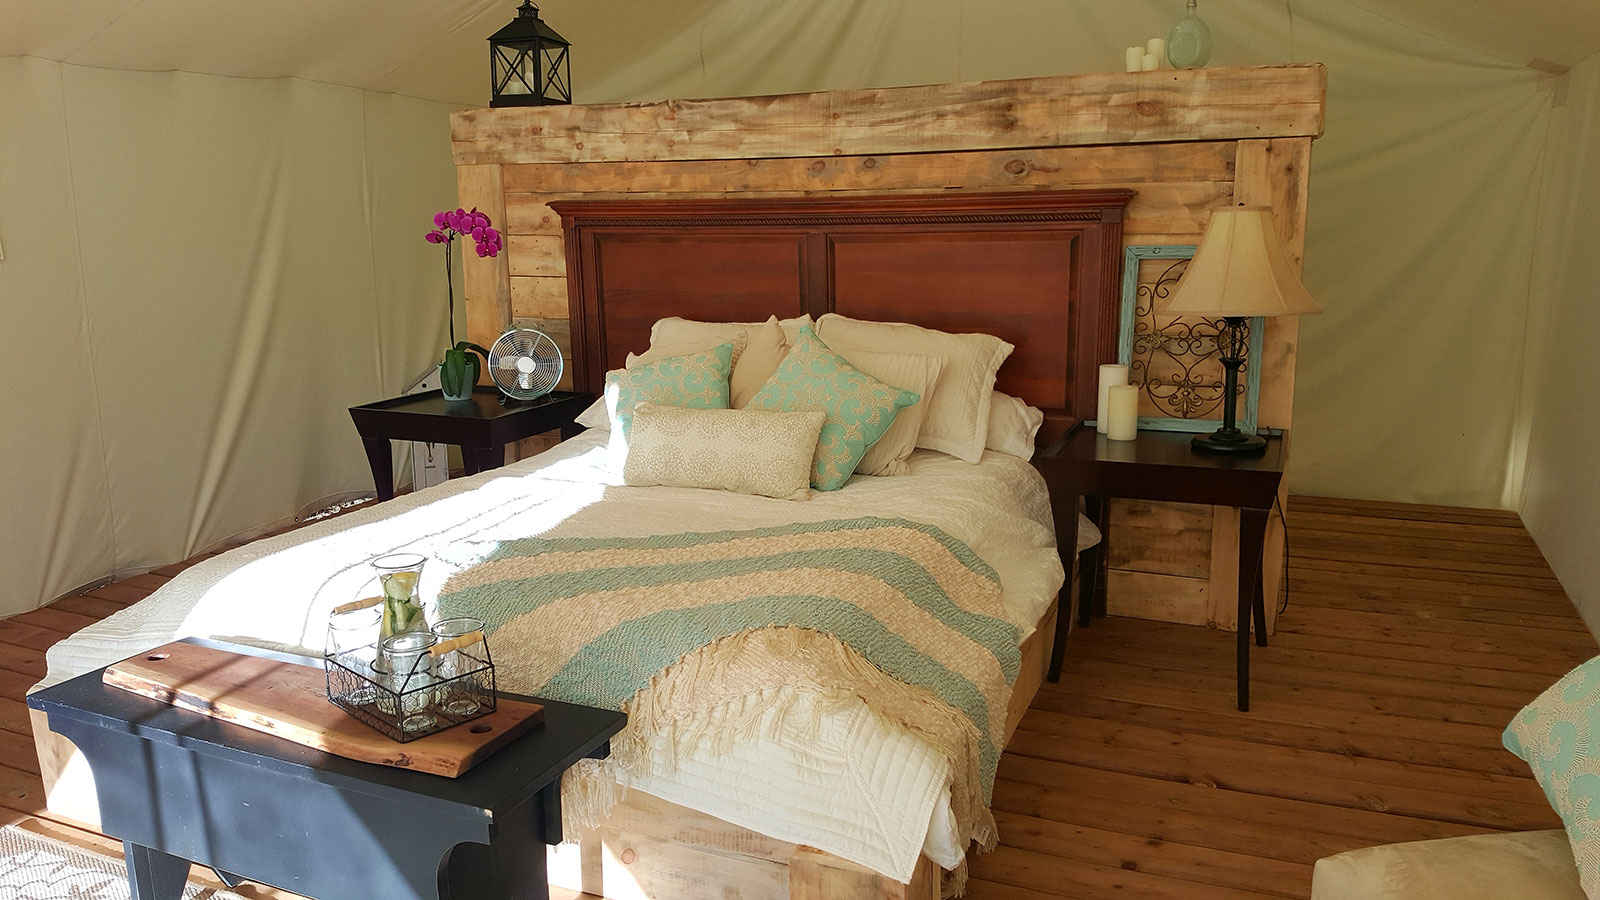 Whispering Springs Glamorous C&ing & New Wilderness Resort Features Tenting in Luxury Canvas Tents ...